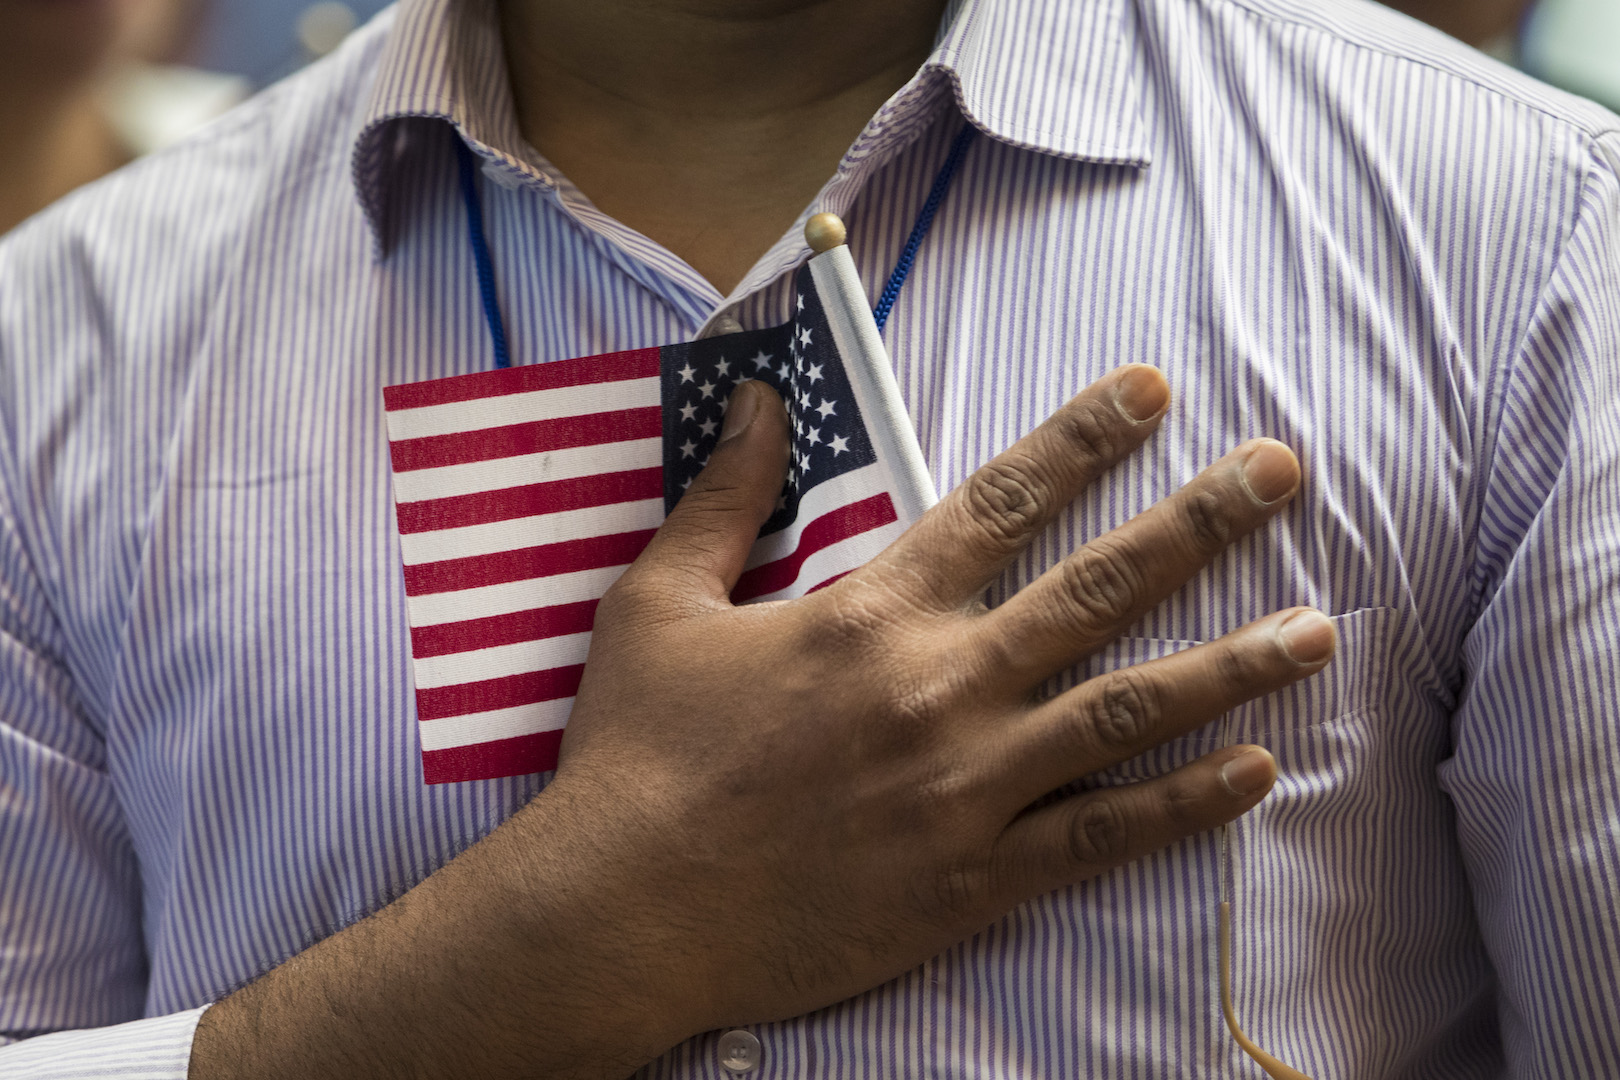 Court Guidelines Trump Can Deport 300,000 Migrants Who've Lived in the U.S. Legally for Years